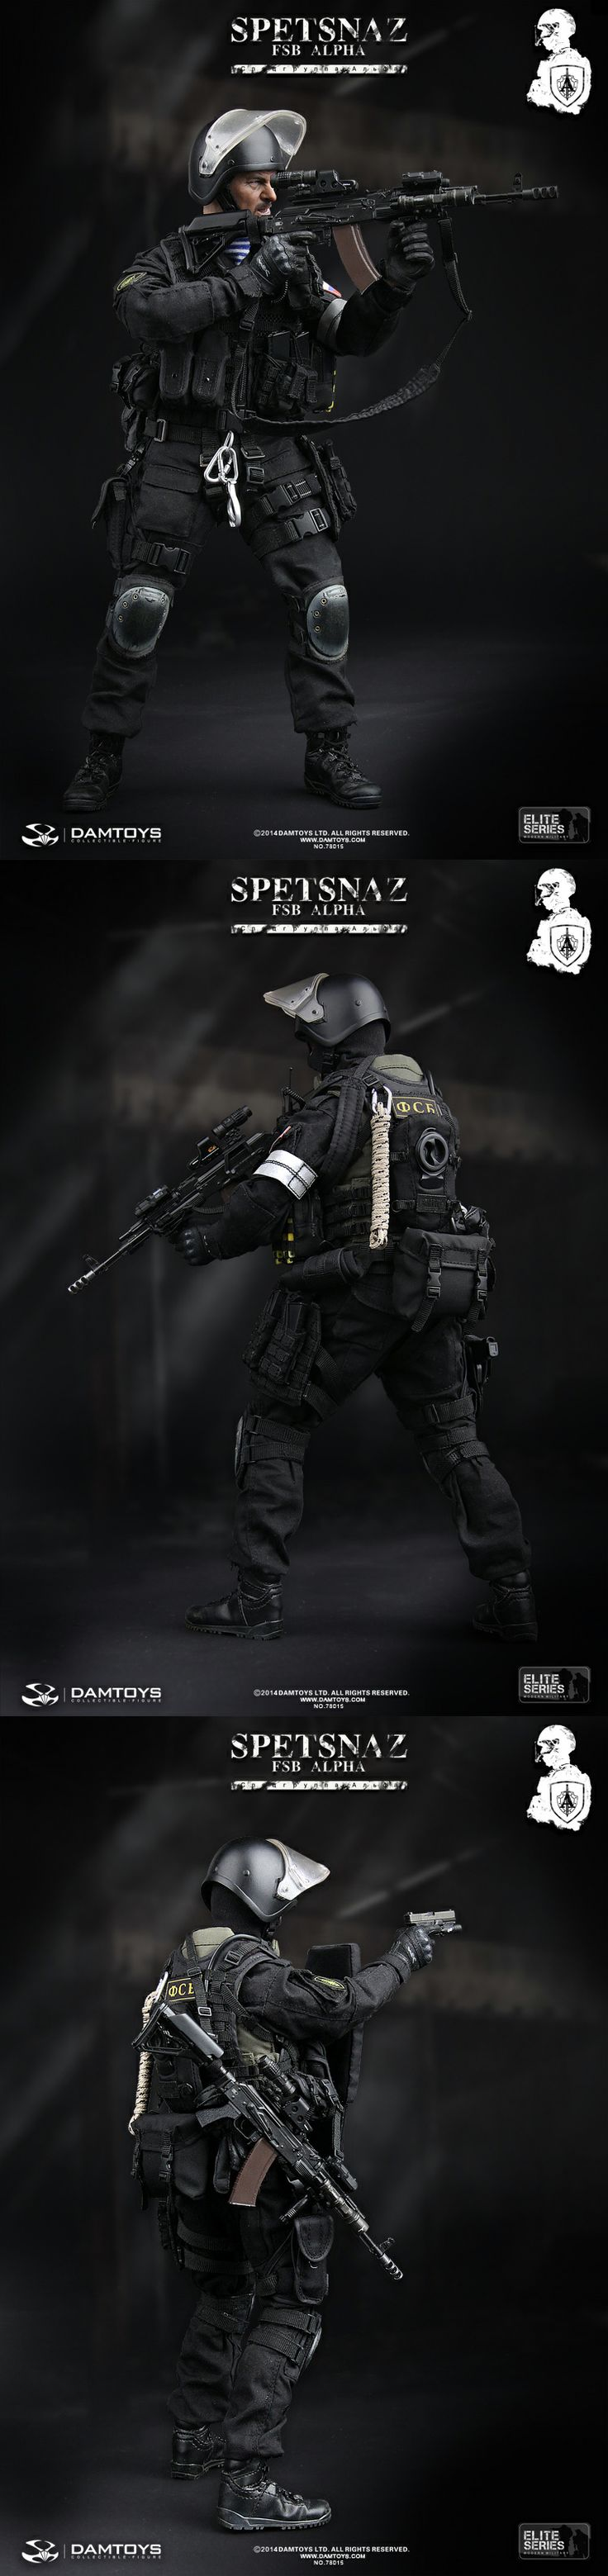 DAMTOYS_78015_SPETSNAZ FSB ALPHA GROUP